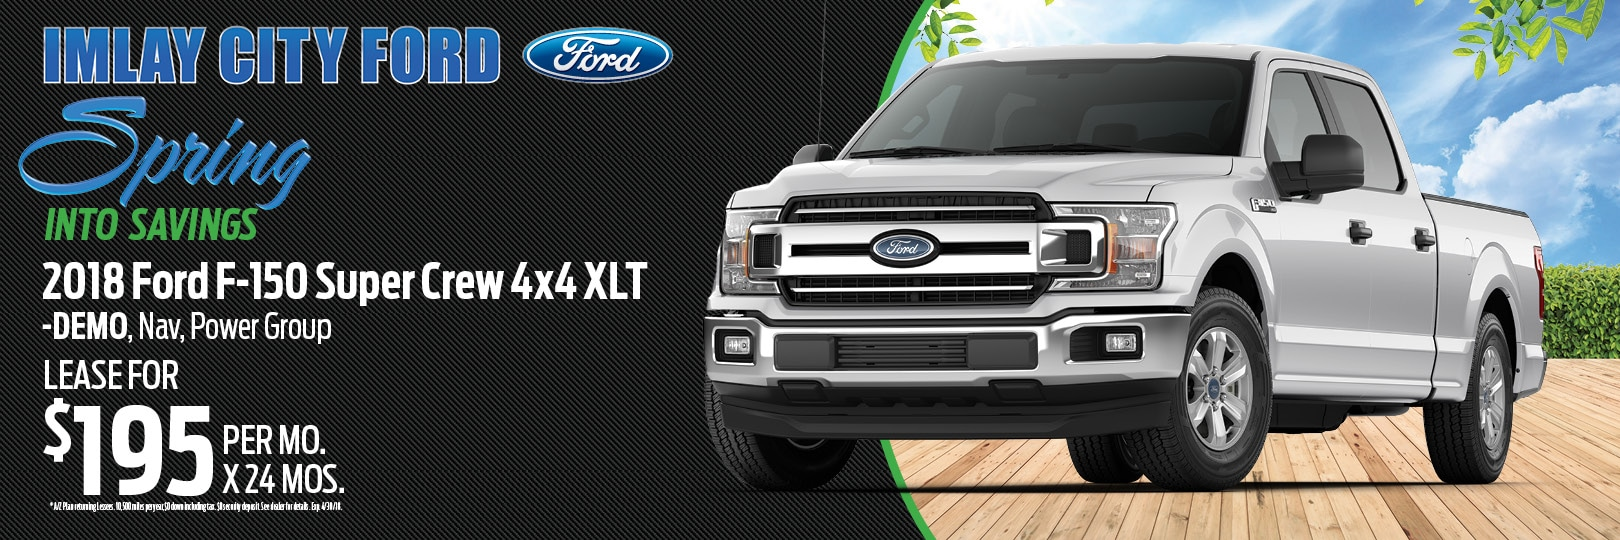 2018 Ford F-150 Demo Vehicle